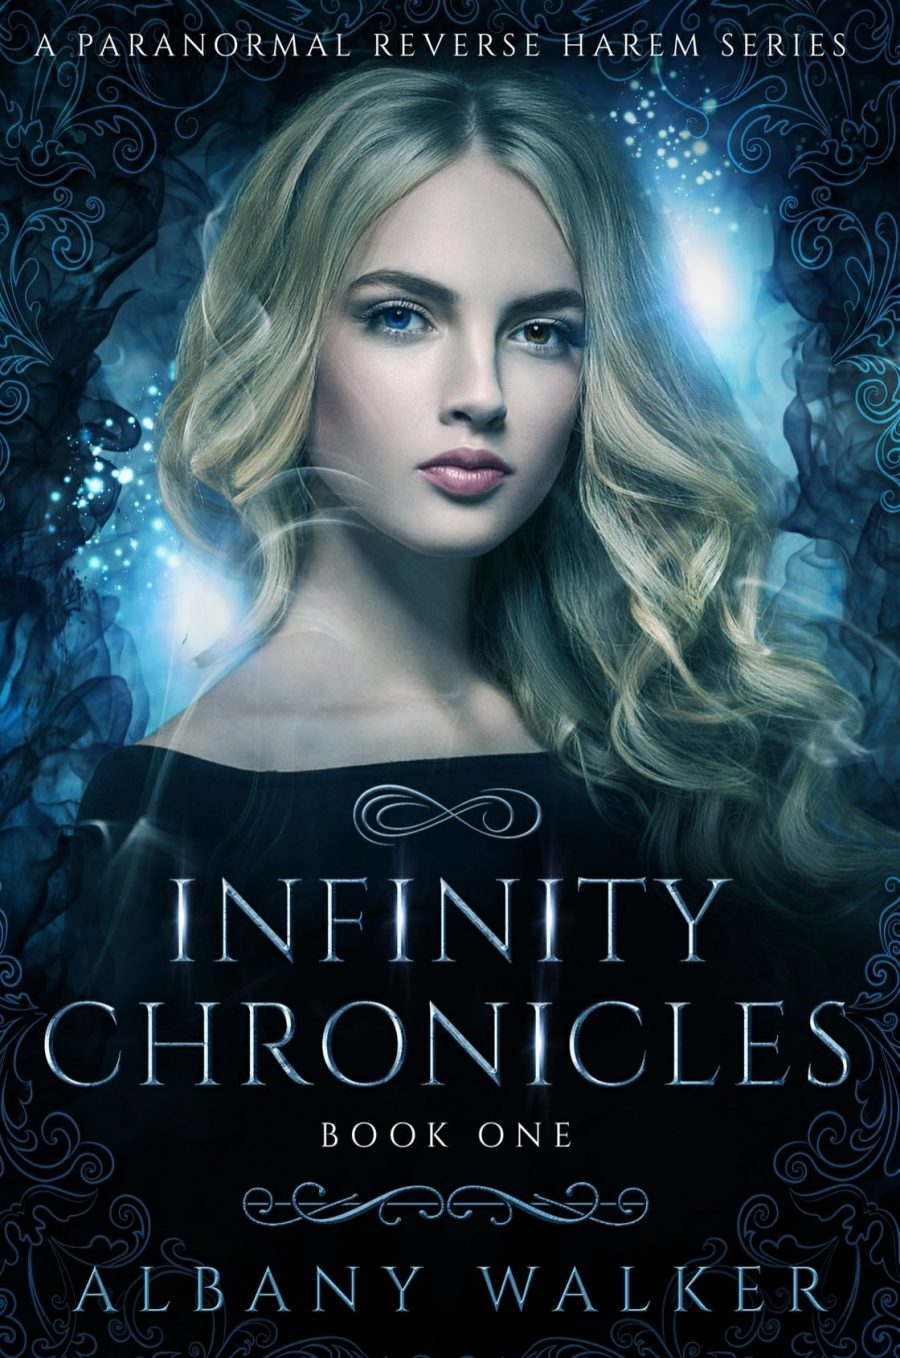 Infinity Chronicles Book One by Albany Walker - A Book Review #BookReview #Paranormal #RH #WhyChoose #ReverseHarem #SlowBurn #YABooks